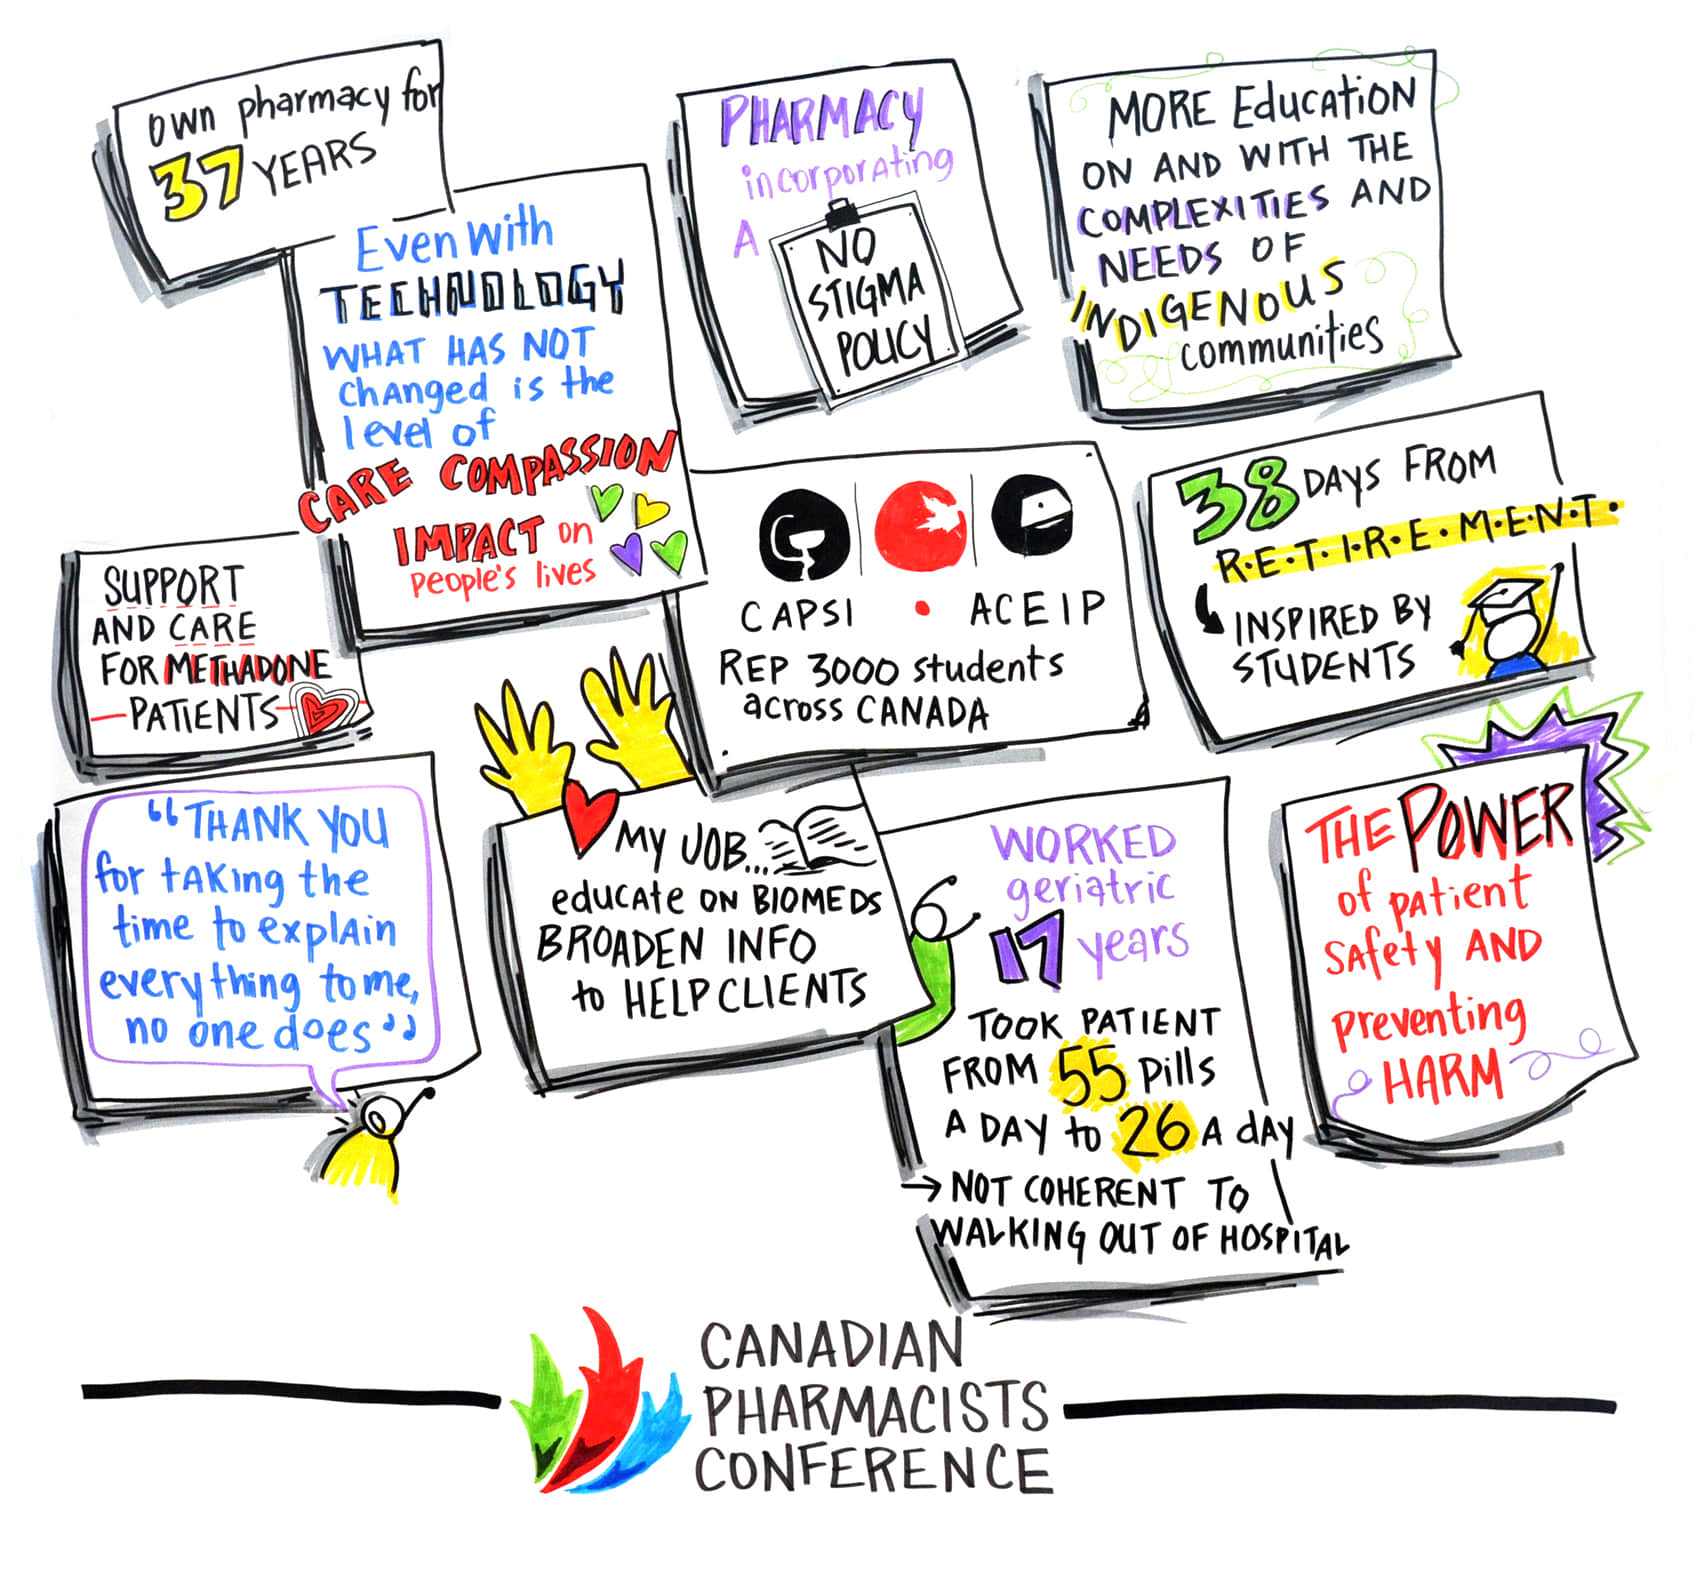 graphic recording of the Canadian pharmacists conference